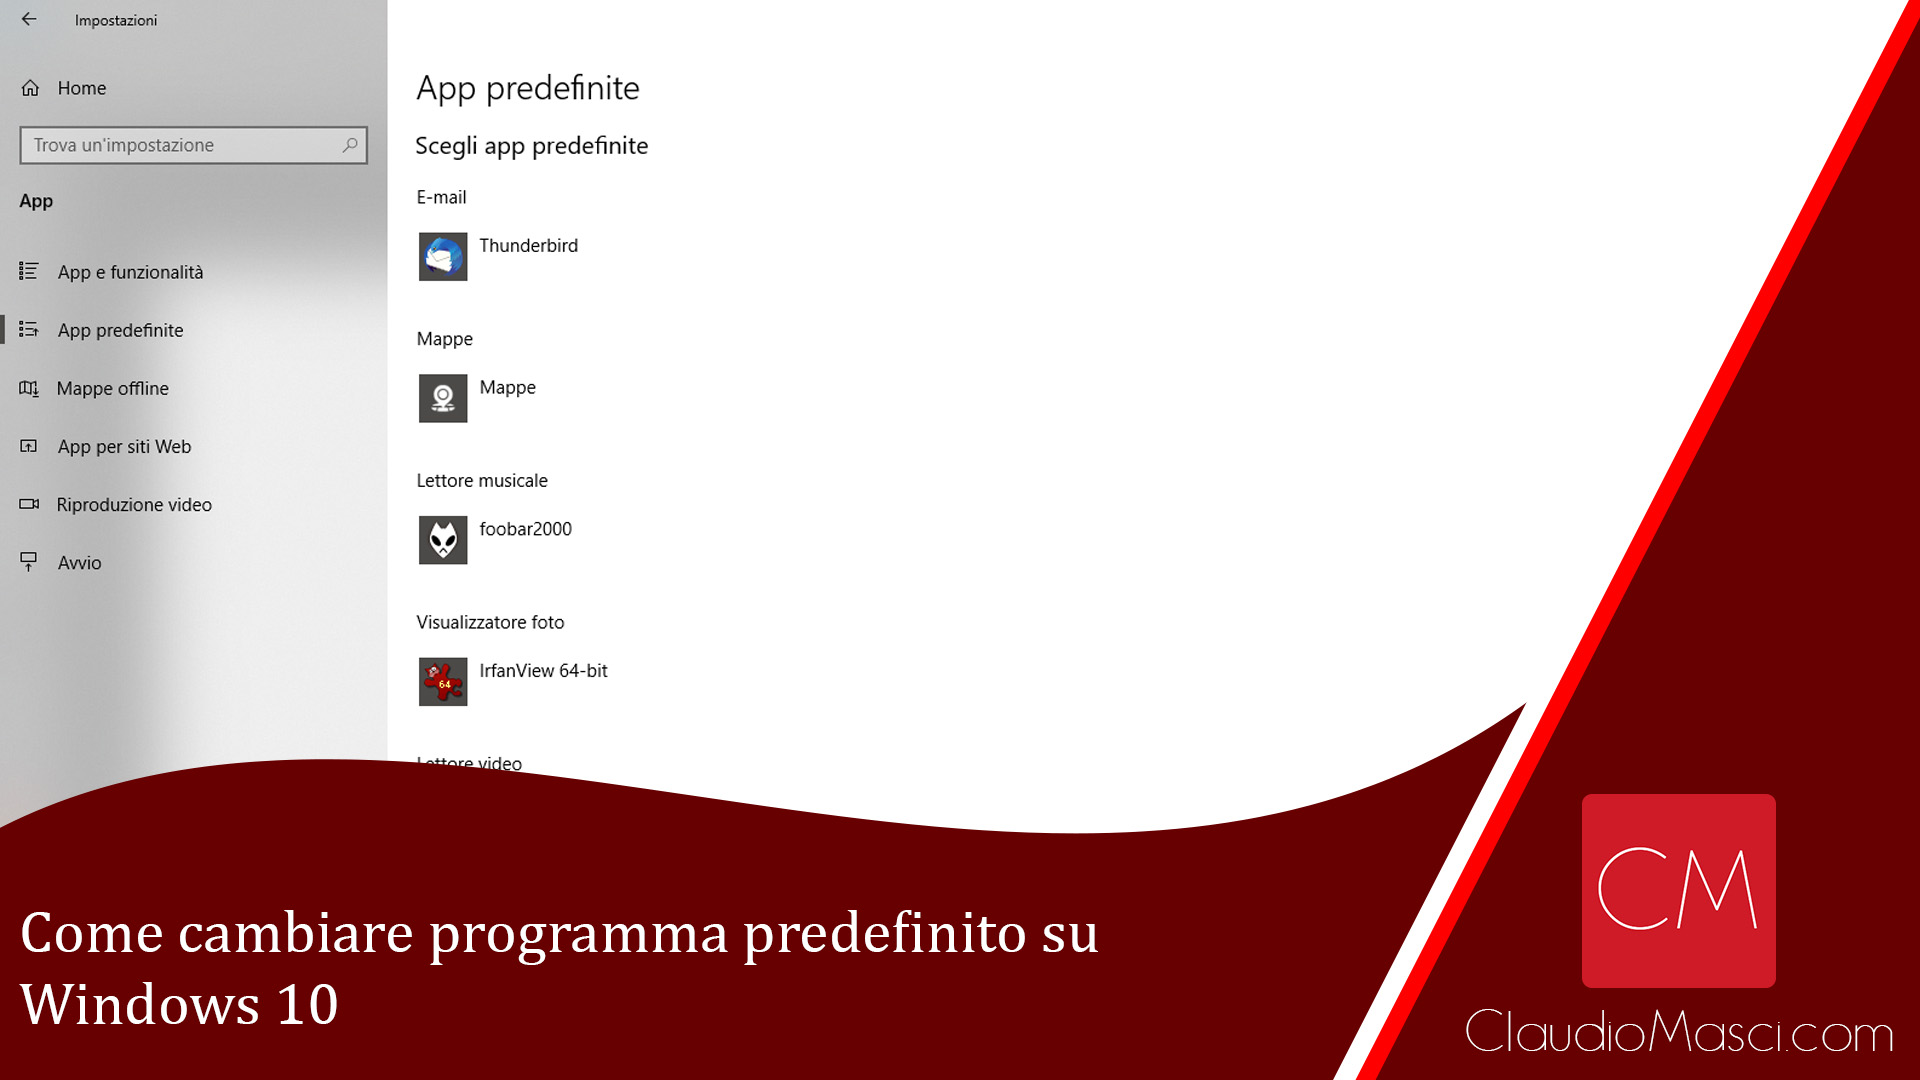 Come cambiare programma predefinito su Windows 10